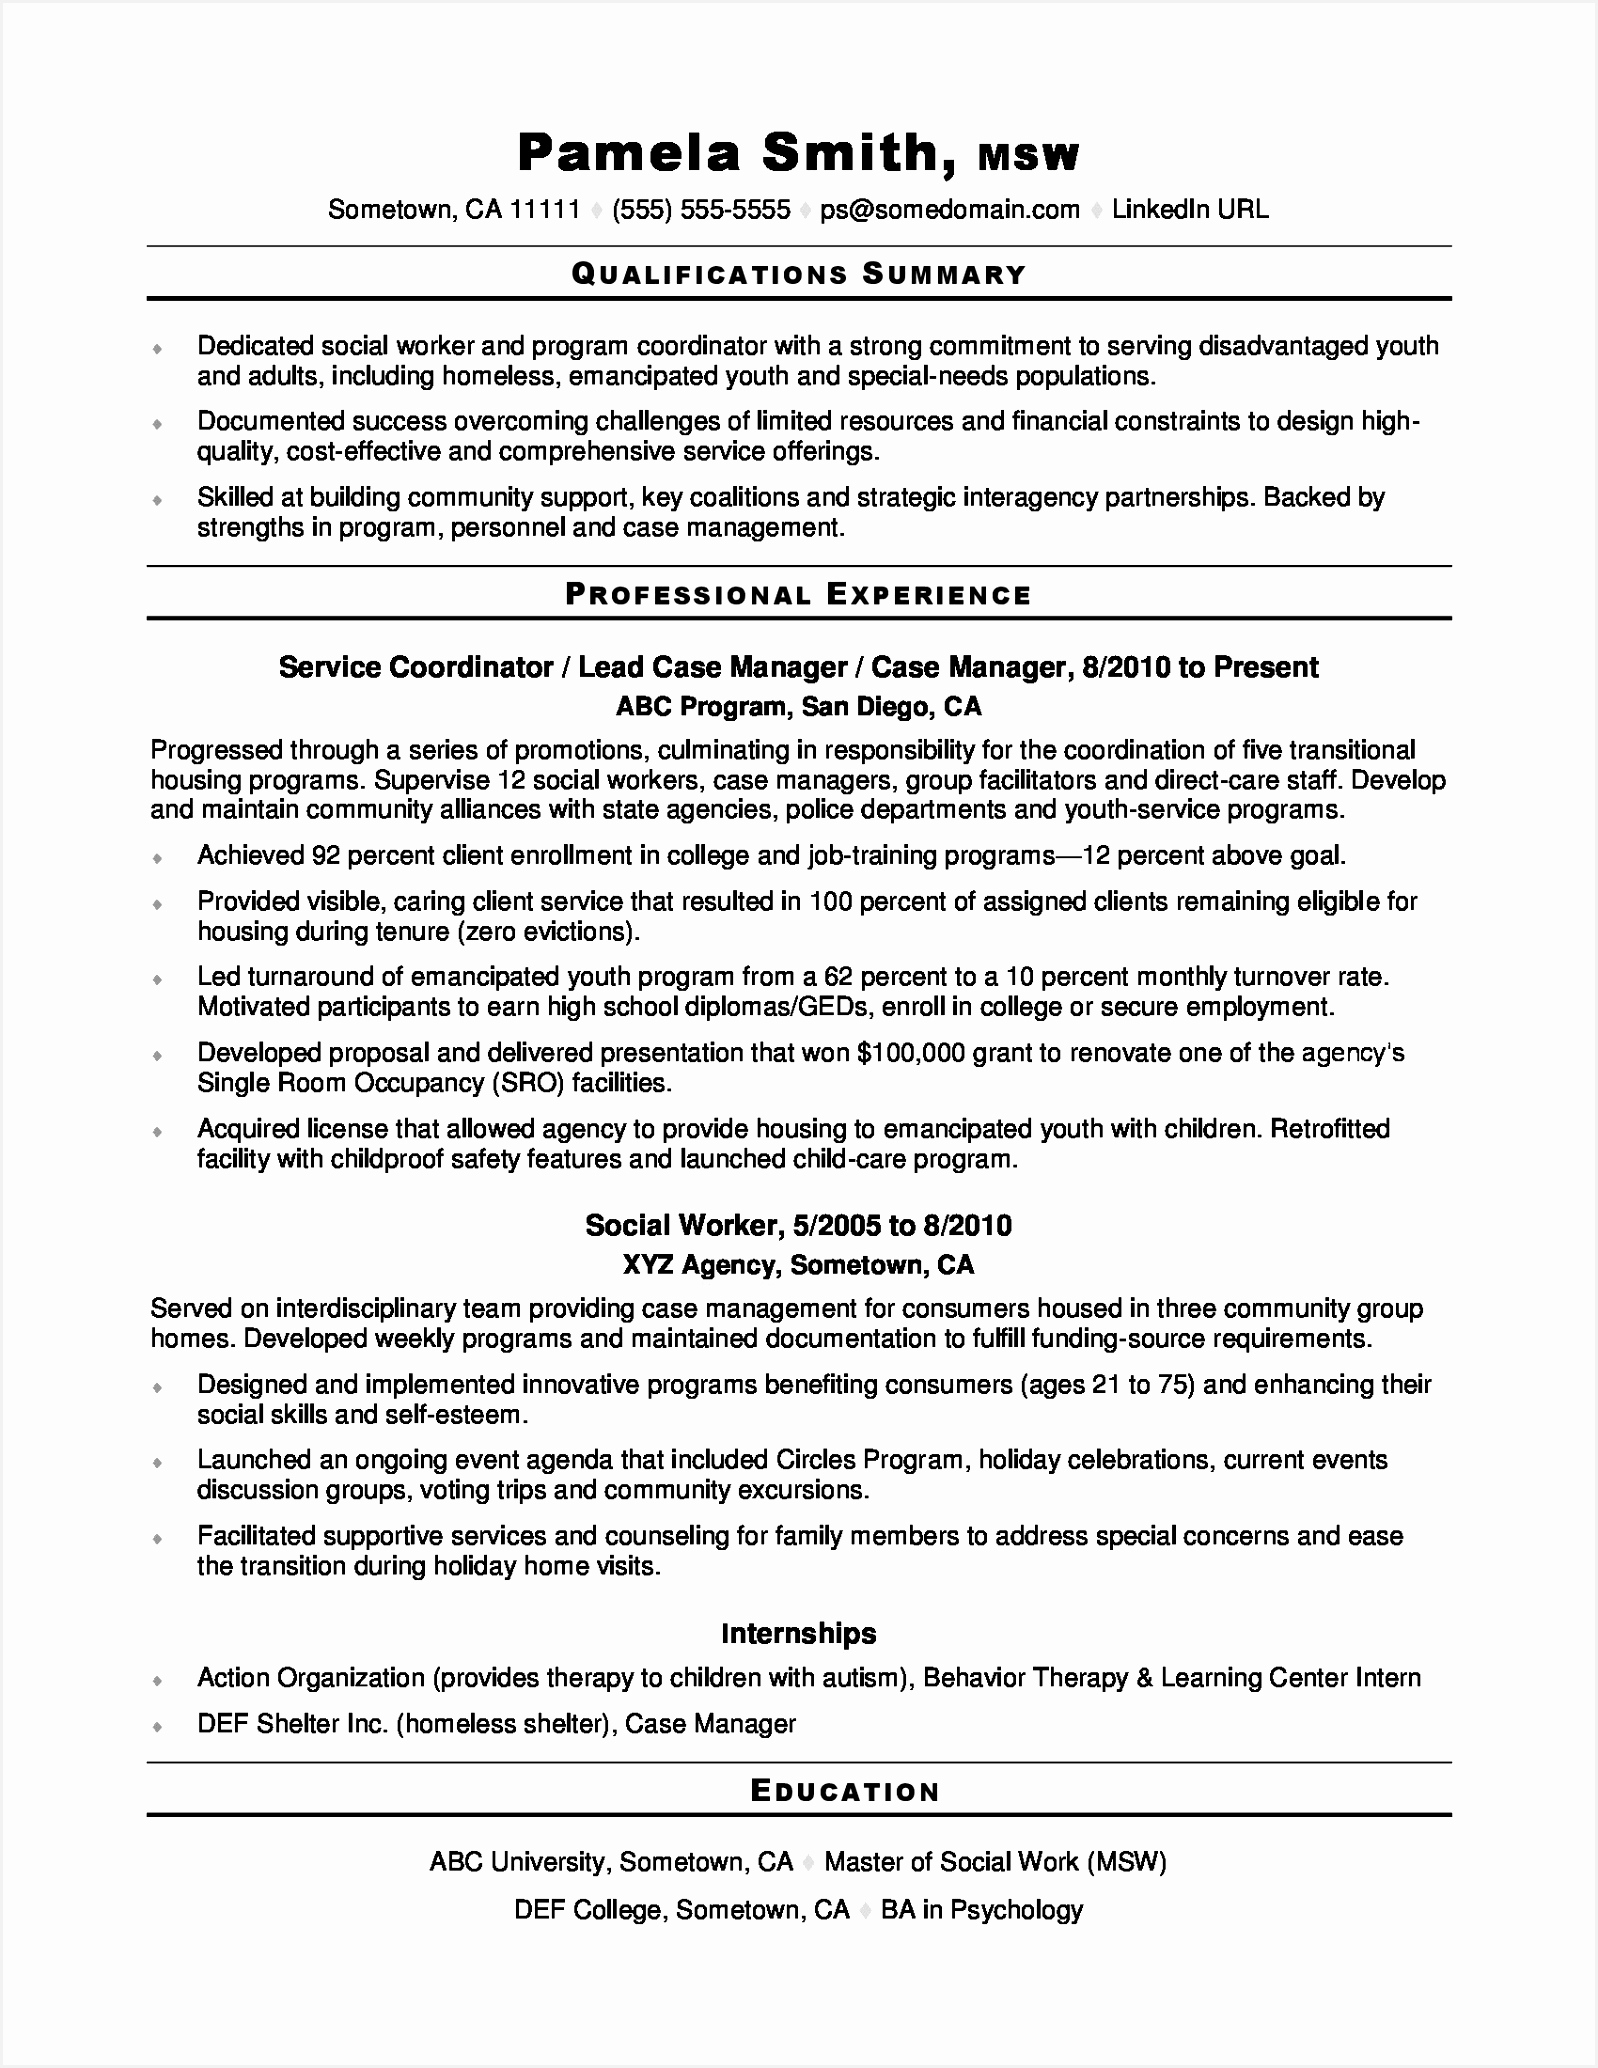 6 Examples Of Cosmetology Resumes Kttrkn Free Samples